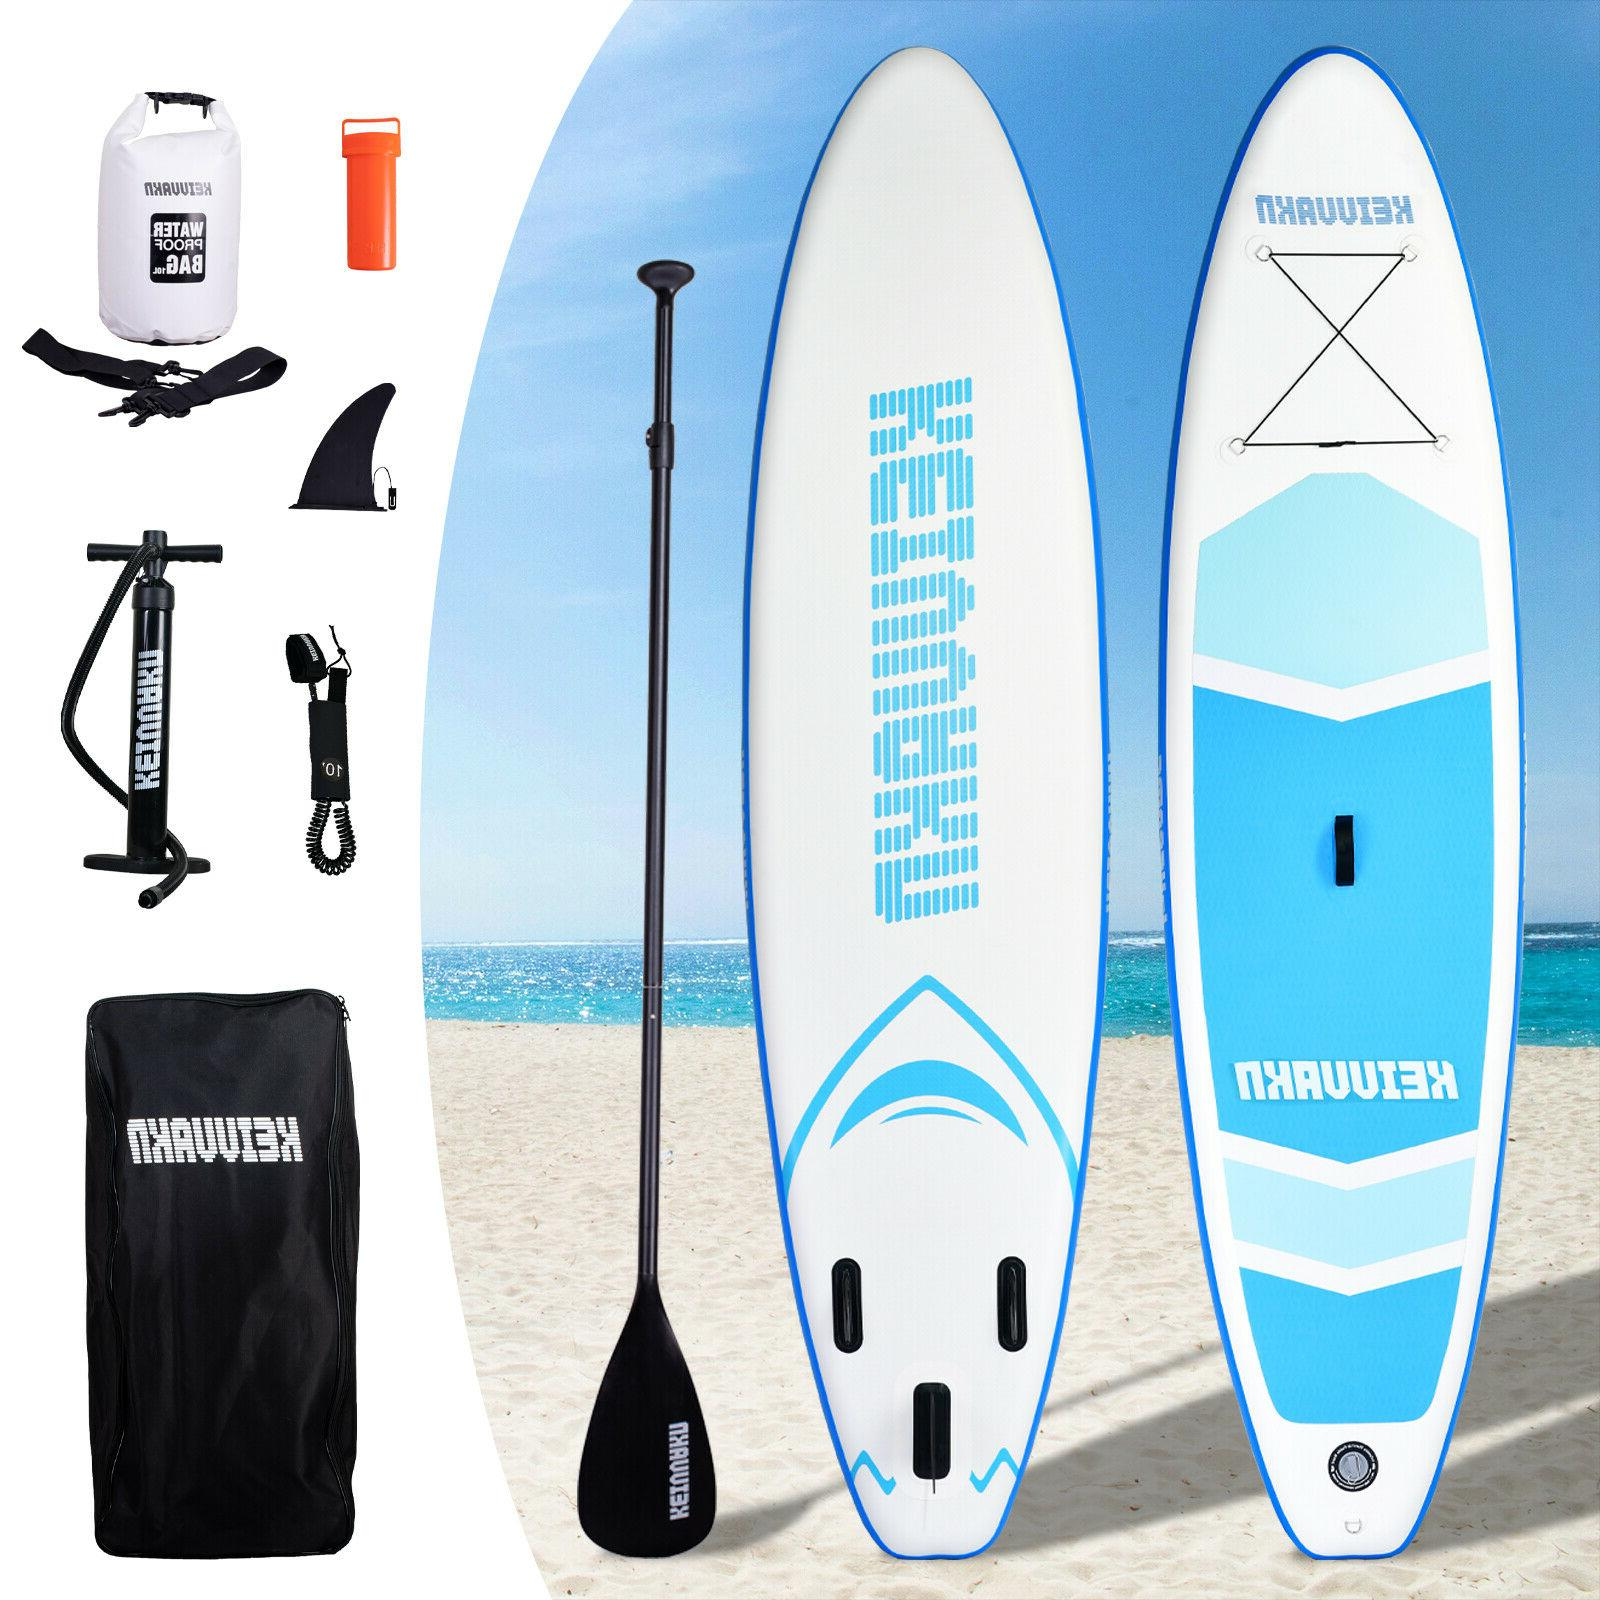 Inflatable Stand Board 11'x33''x6'' Stance Anti-Slip